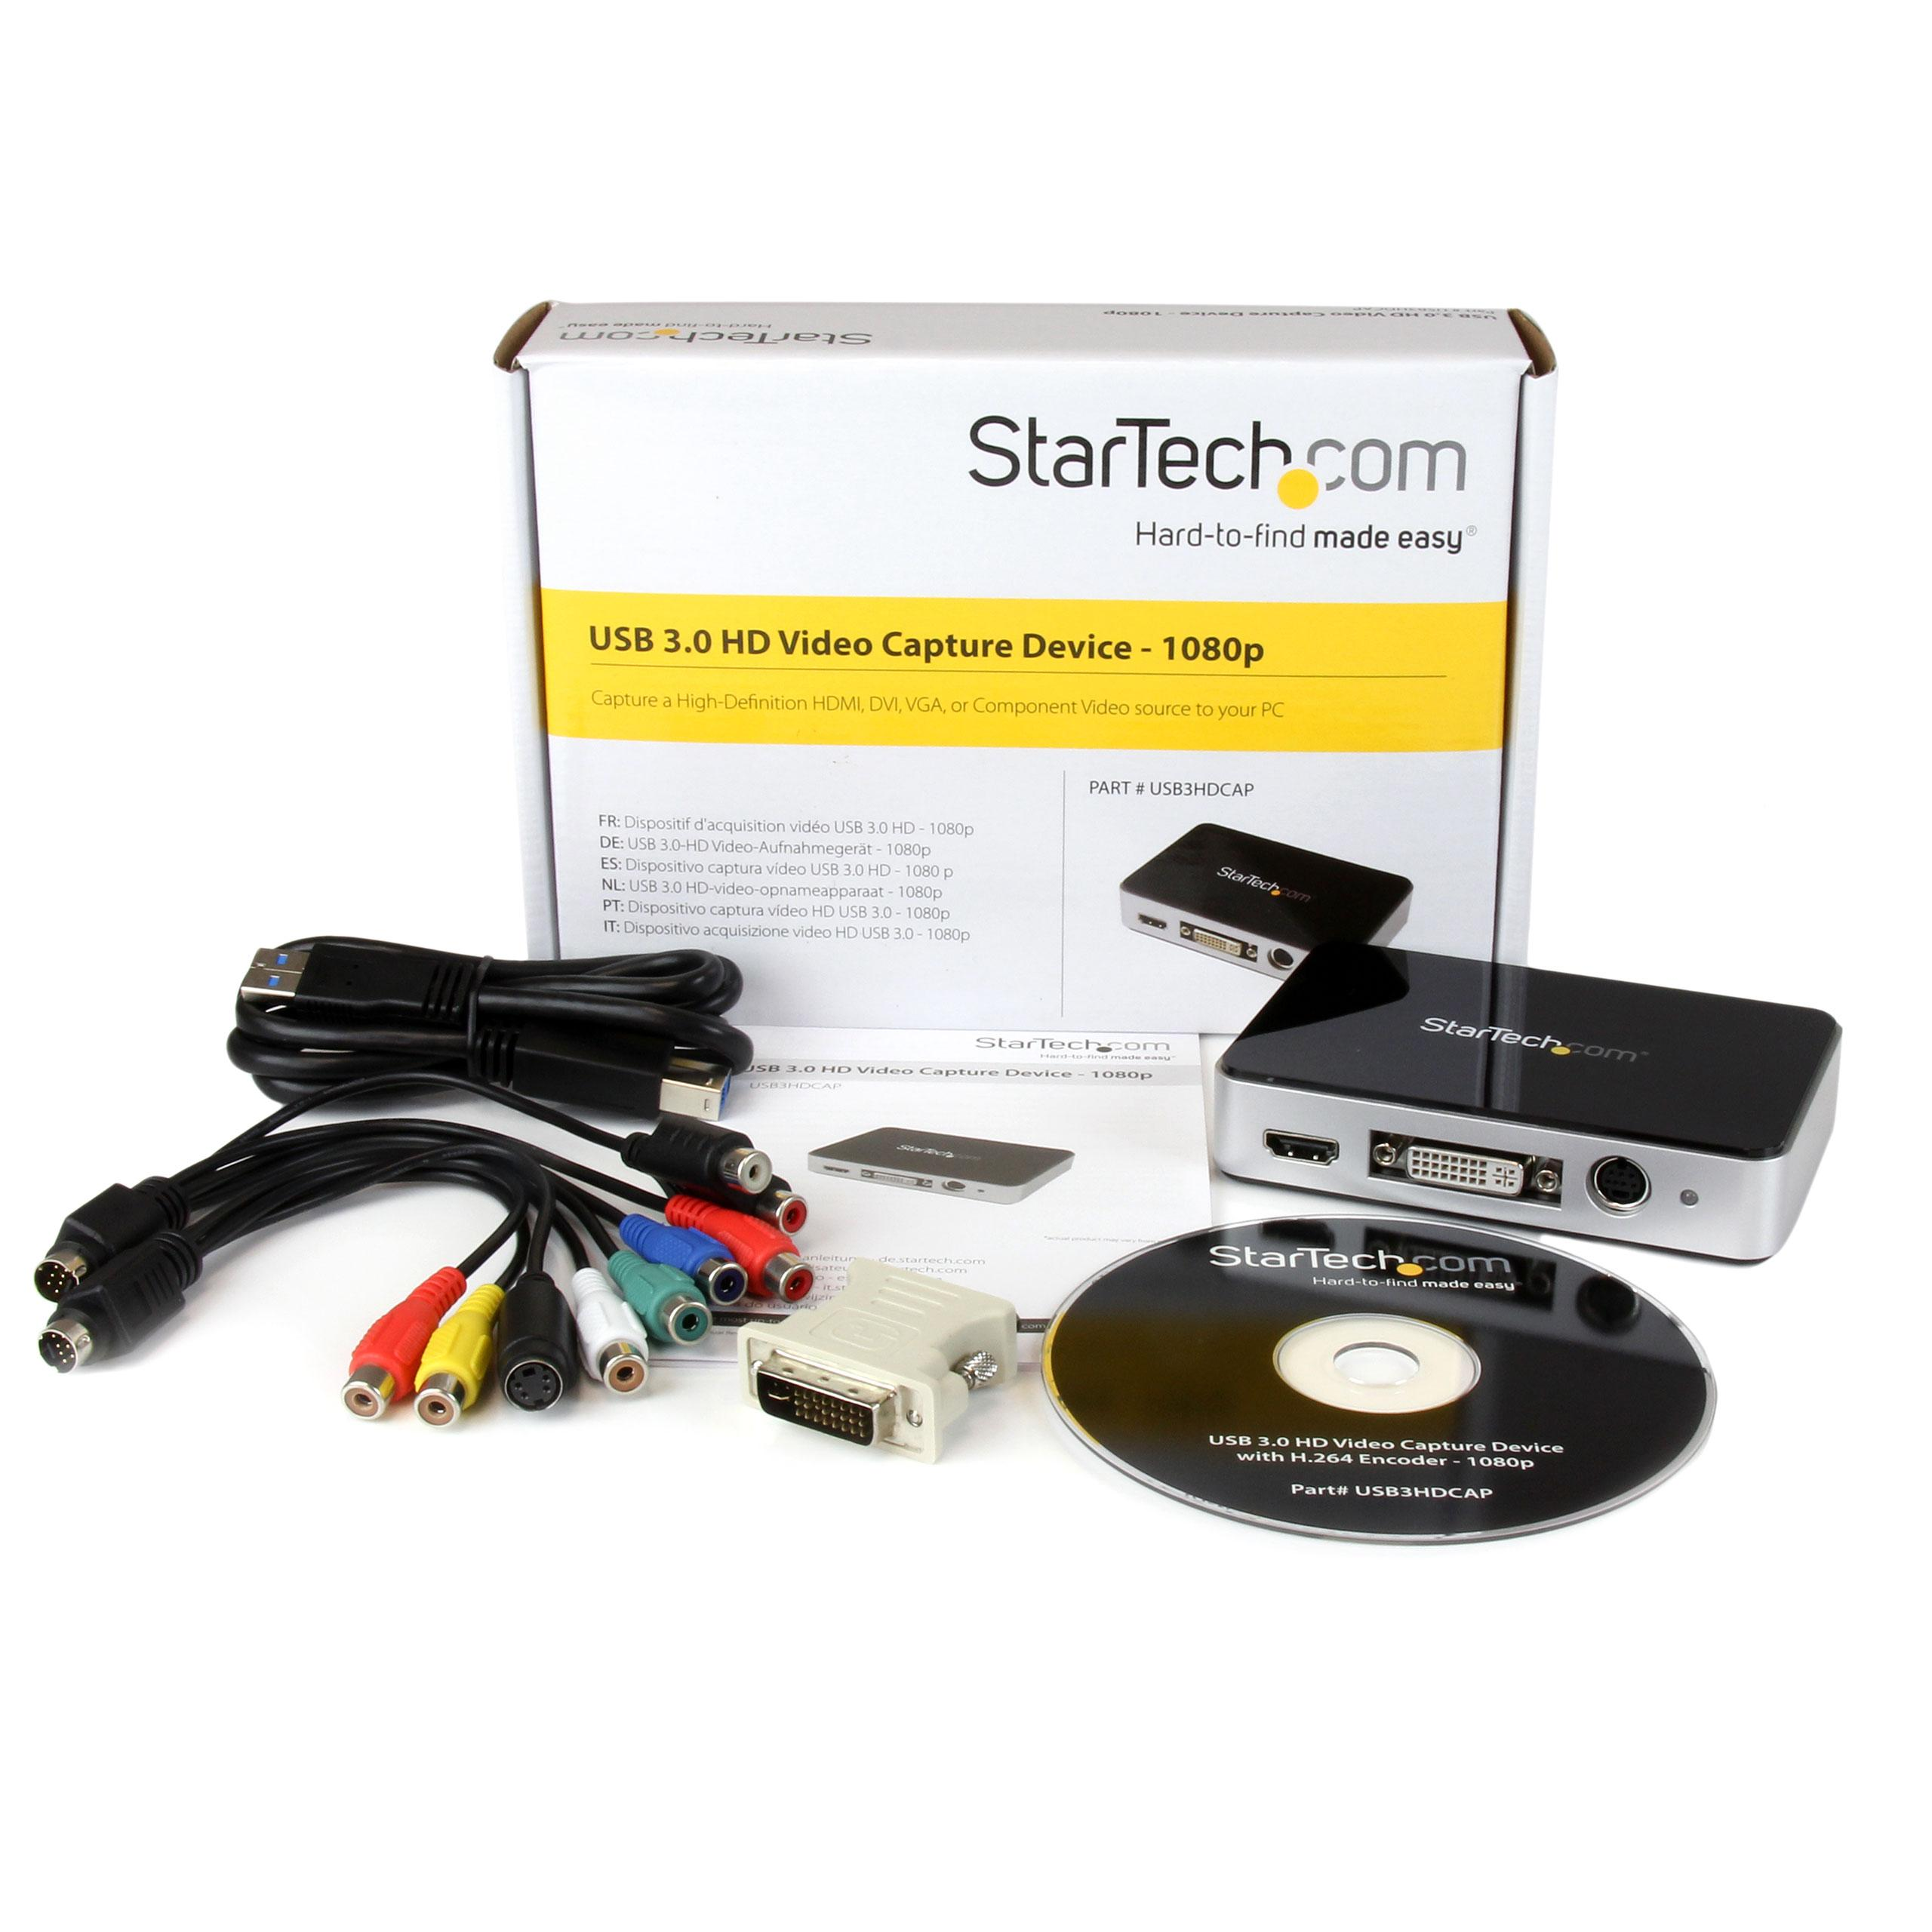 StarTech com HDMI Video Capture Device for USB 3 0 Computers - VGA / DVI /  CPNT / HDMI Video Capture Device - 1080p 60fps